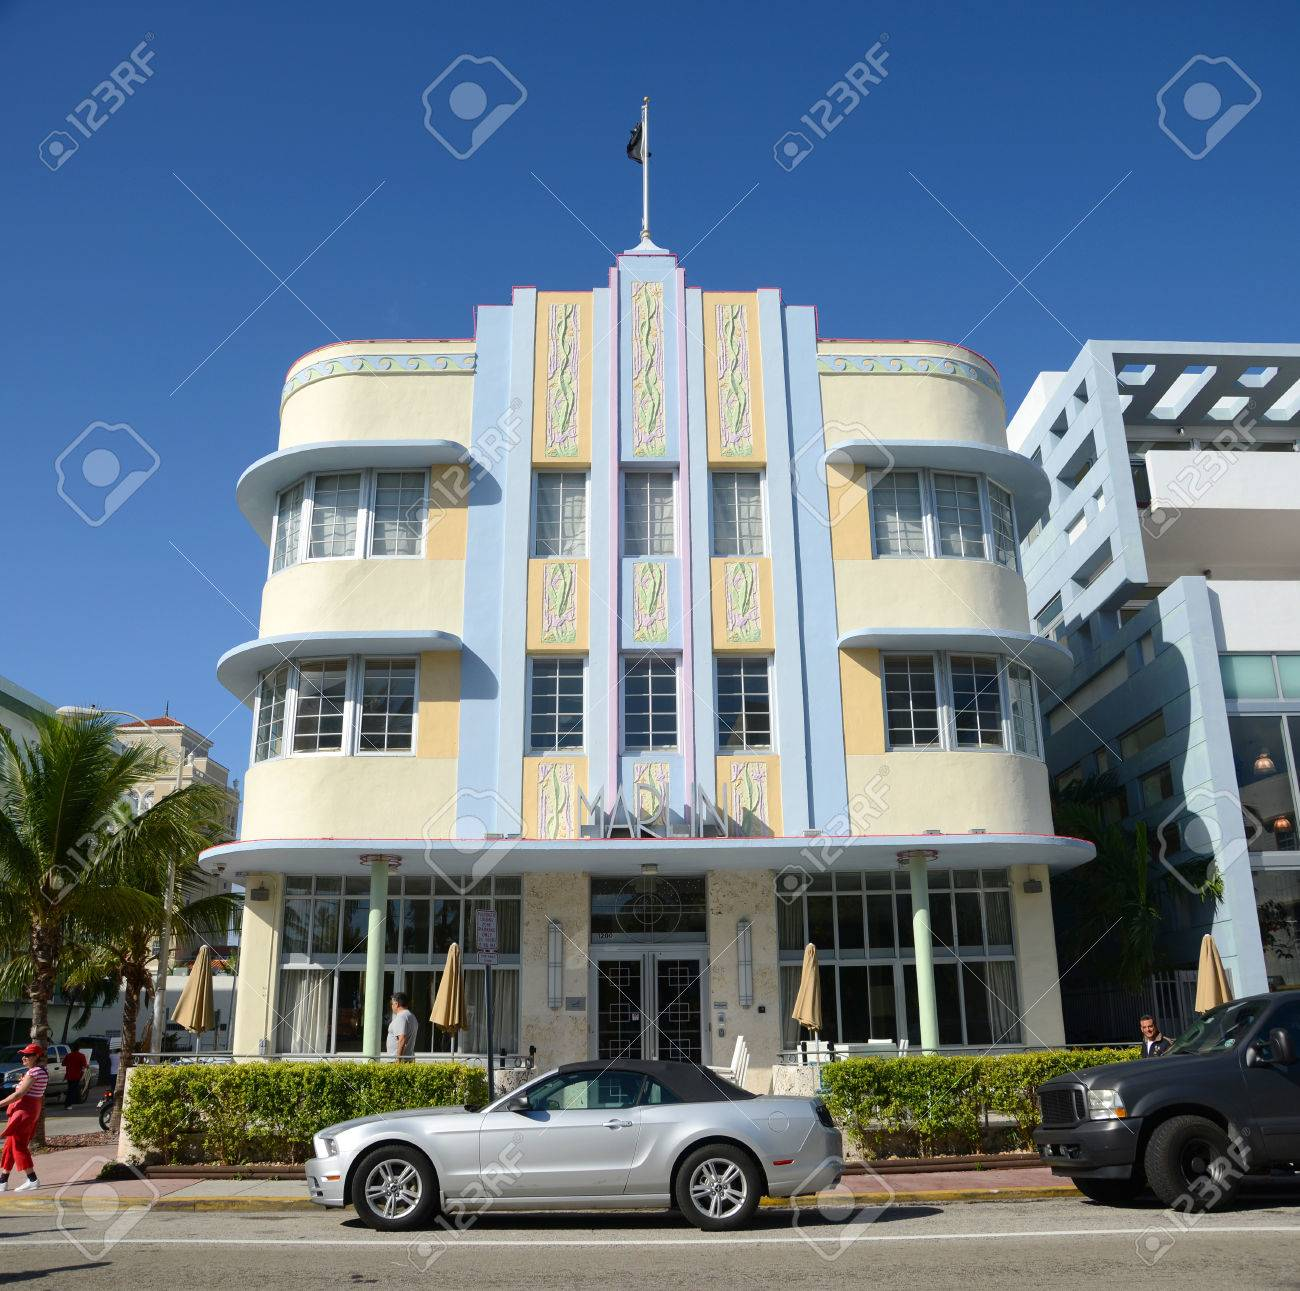 Art Deco Stil Art Deco Stil Gebäude Marlin Hotel In Miami Beach Am Morgen Miami Florida Usa